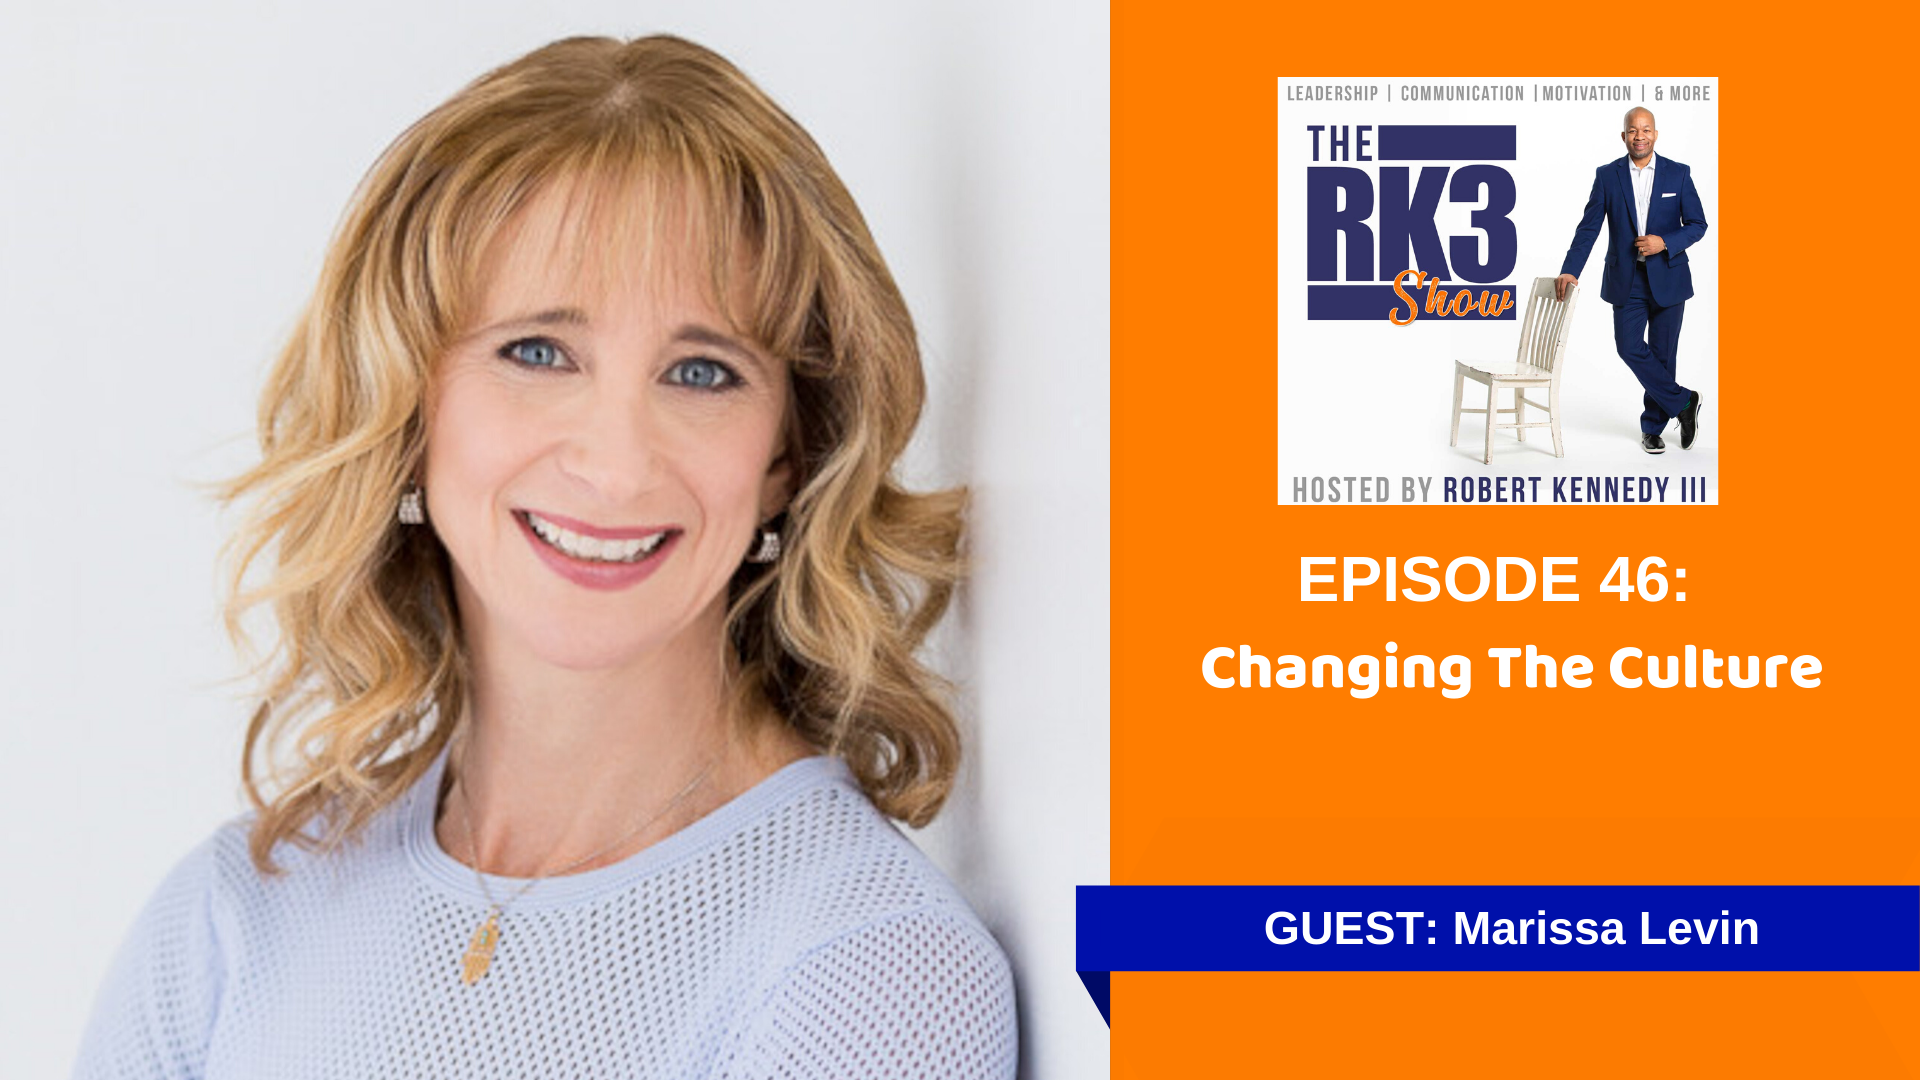 Marissa Levin - Changing the Culture